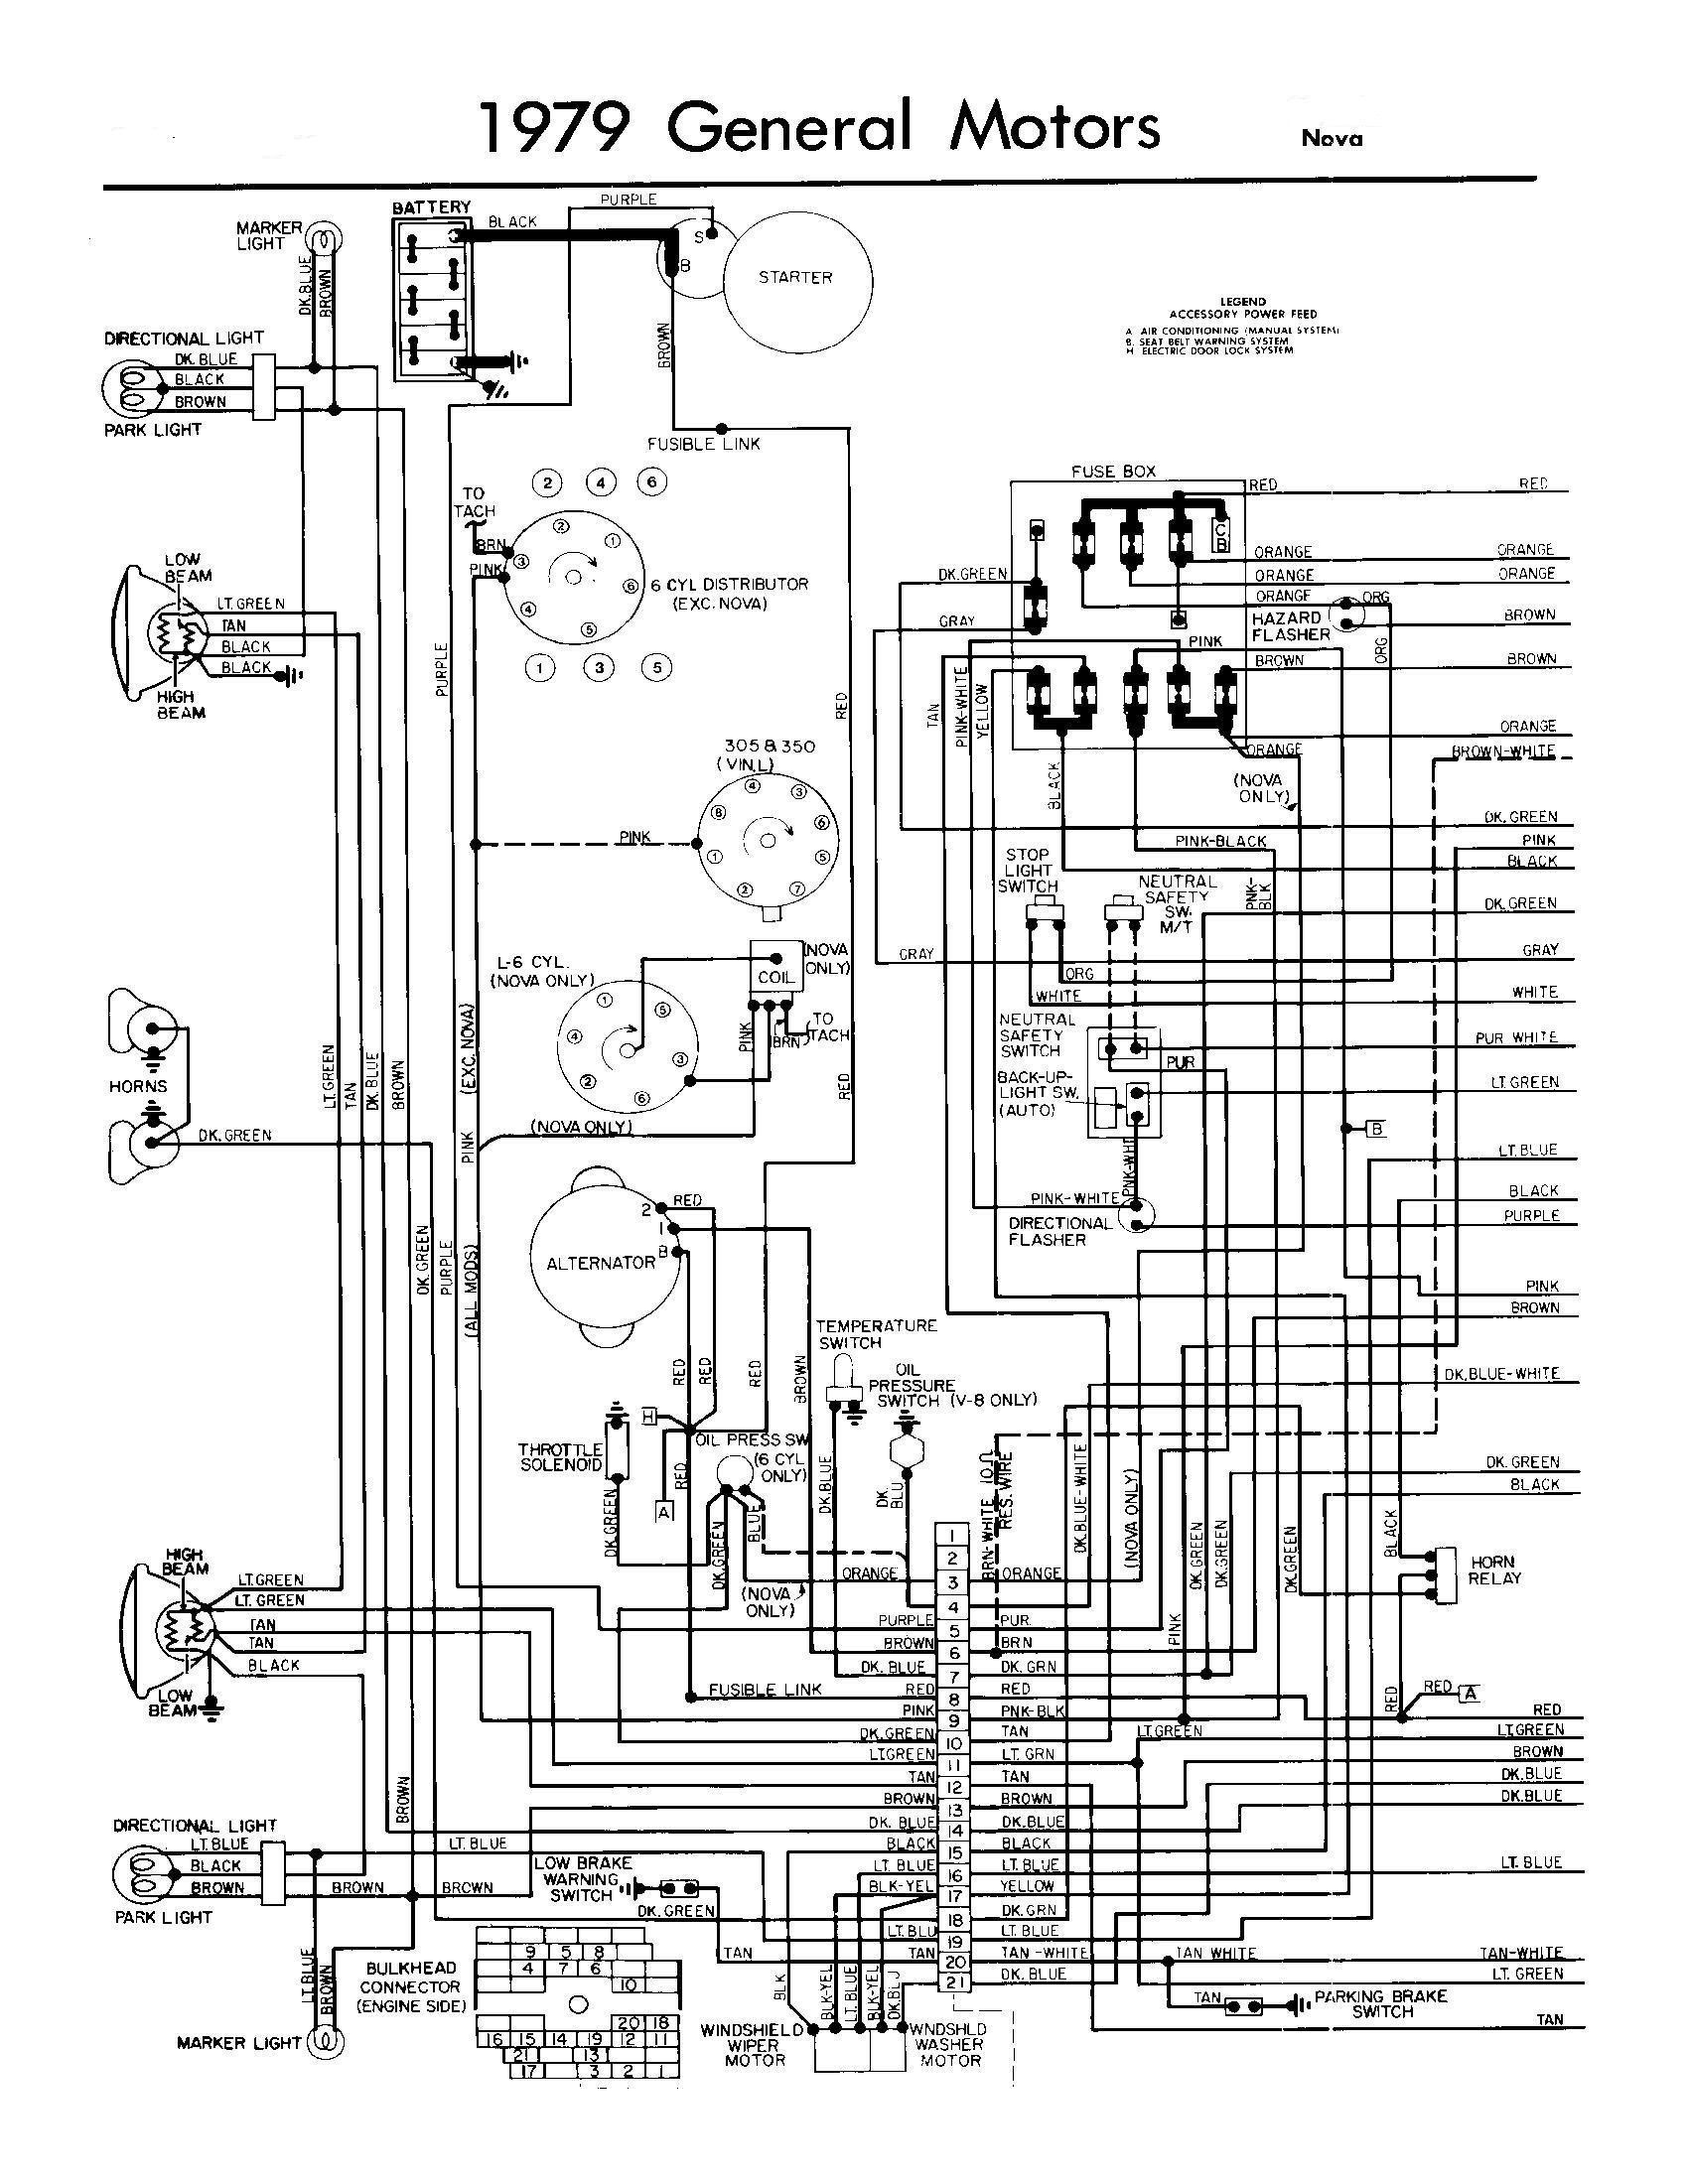 chevy vega wiring harness online schematic diagram u2022 rh muscle pharma  co 77 Chevy Truck Wiring Diagram 1972 Chevy C10 Wiring Diagram with Gauges